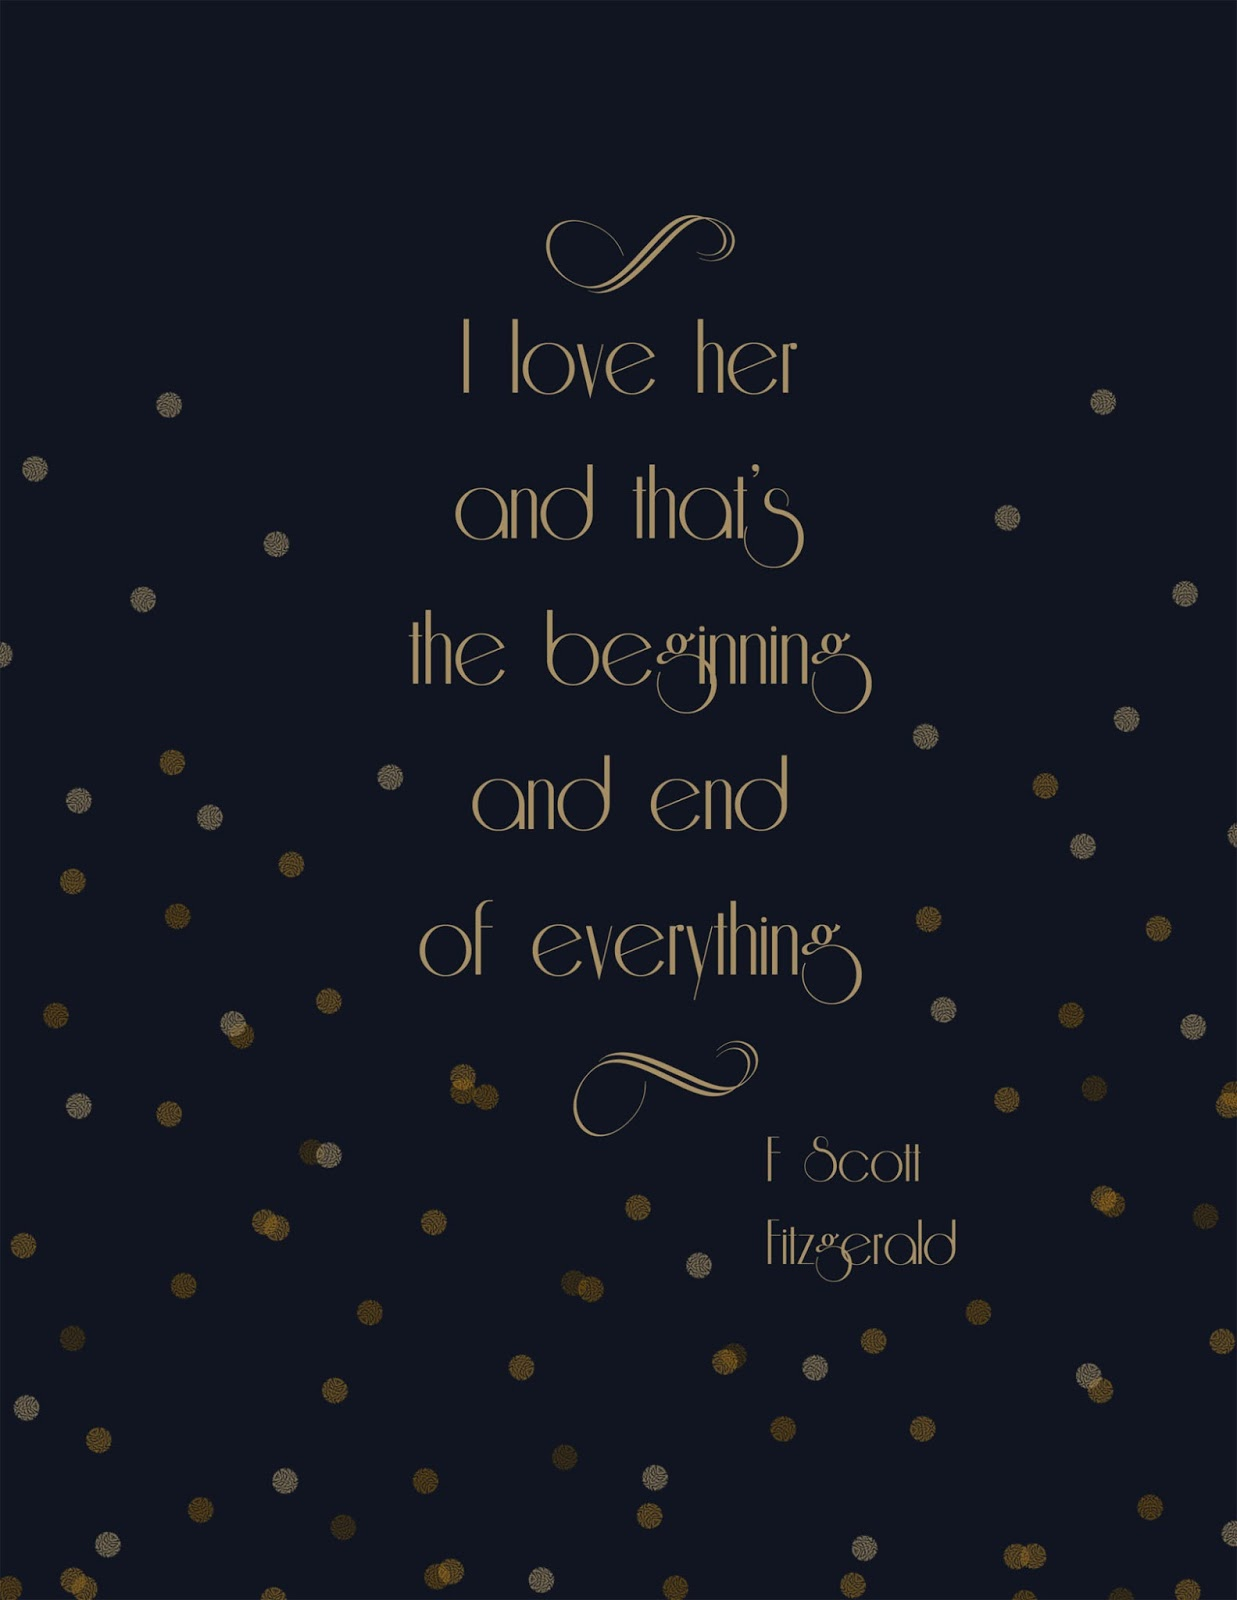 Scott fitzgerald love quotes quotesgram